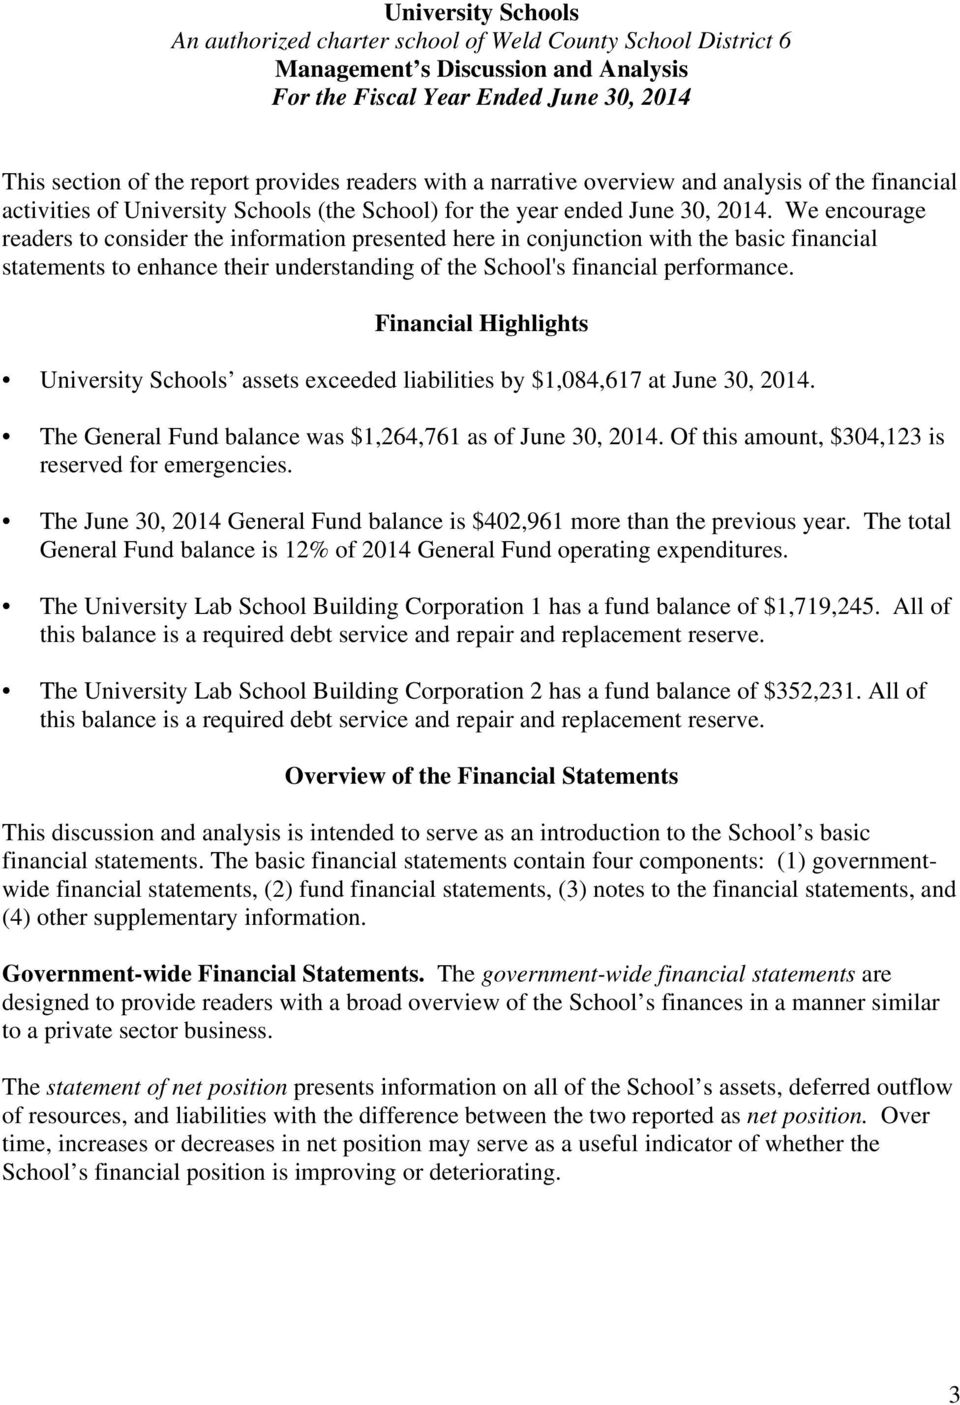 We encourage readers to consider the information presented here in conjunction with the basic financial statements to enhance their understanding of the School's financial performance.